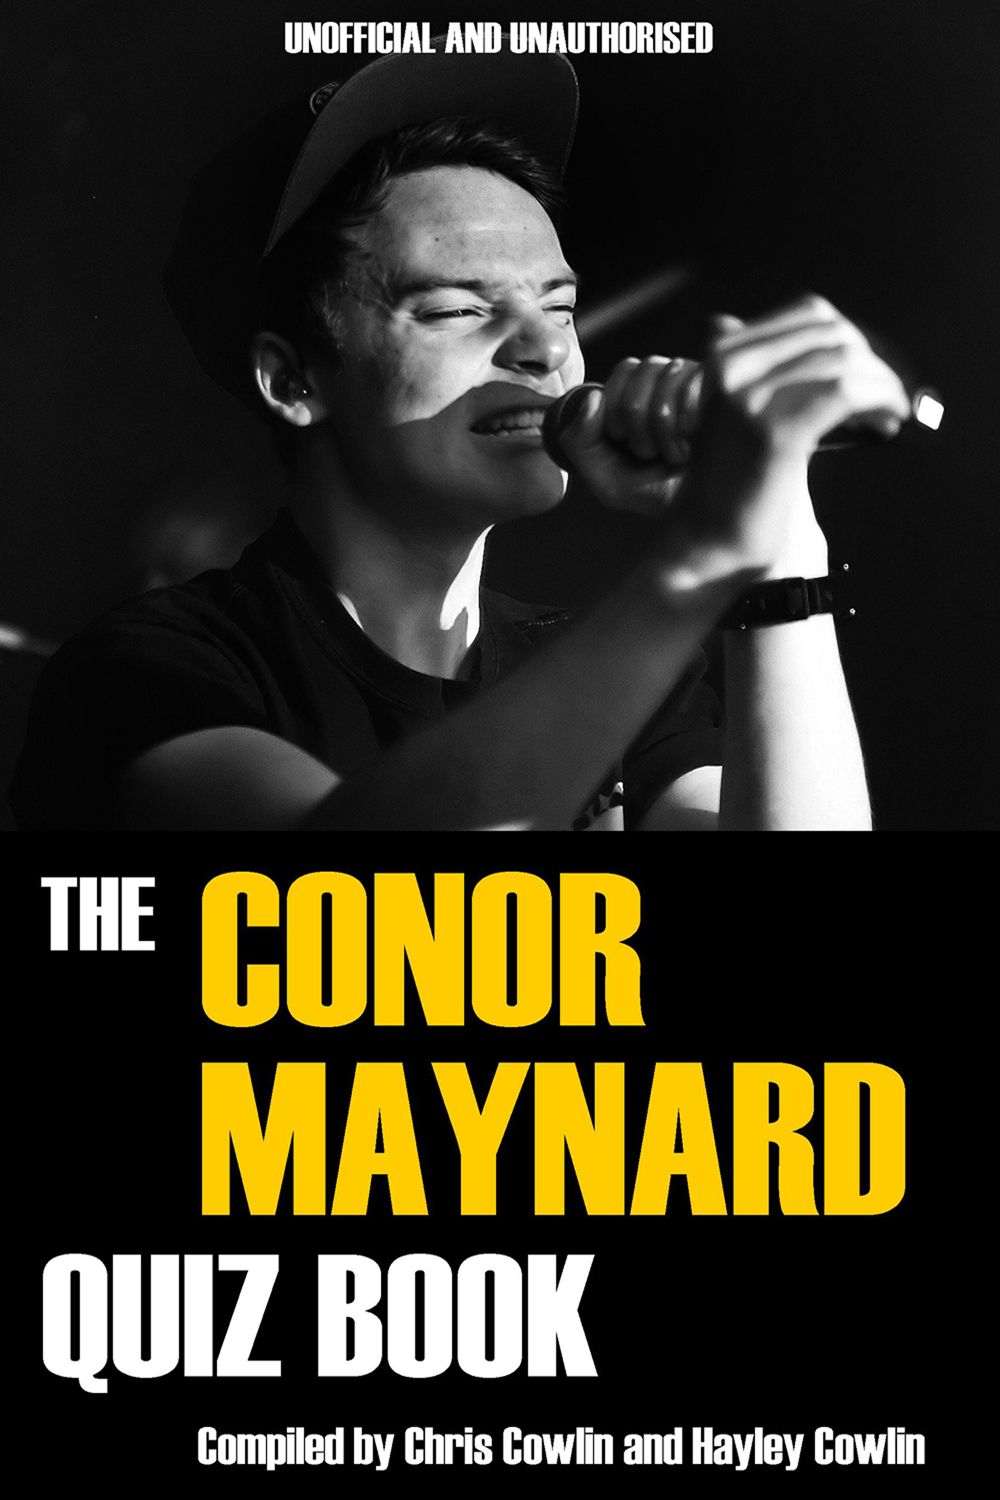 The Conor Maynard Quiz Book